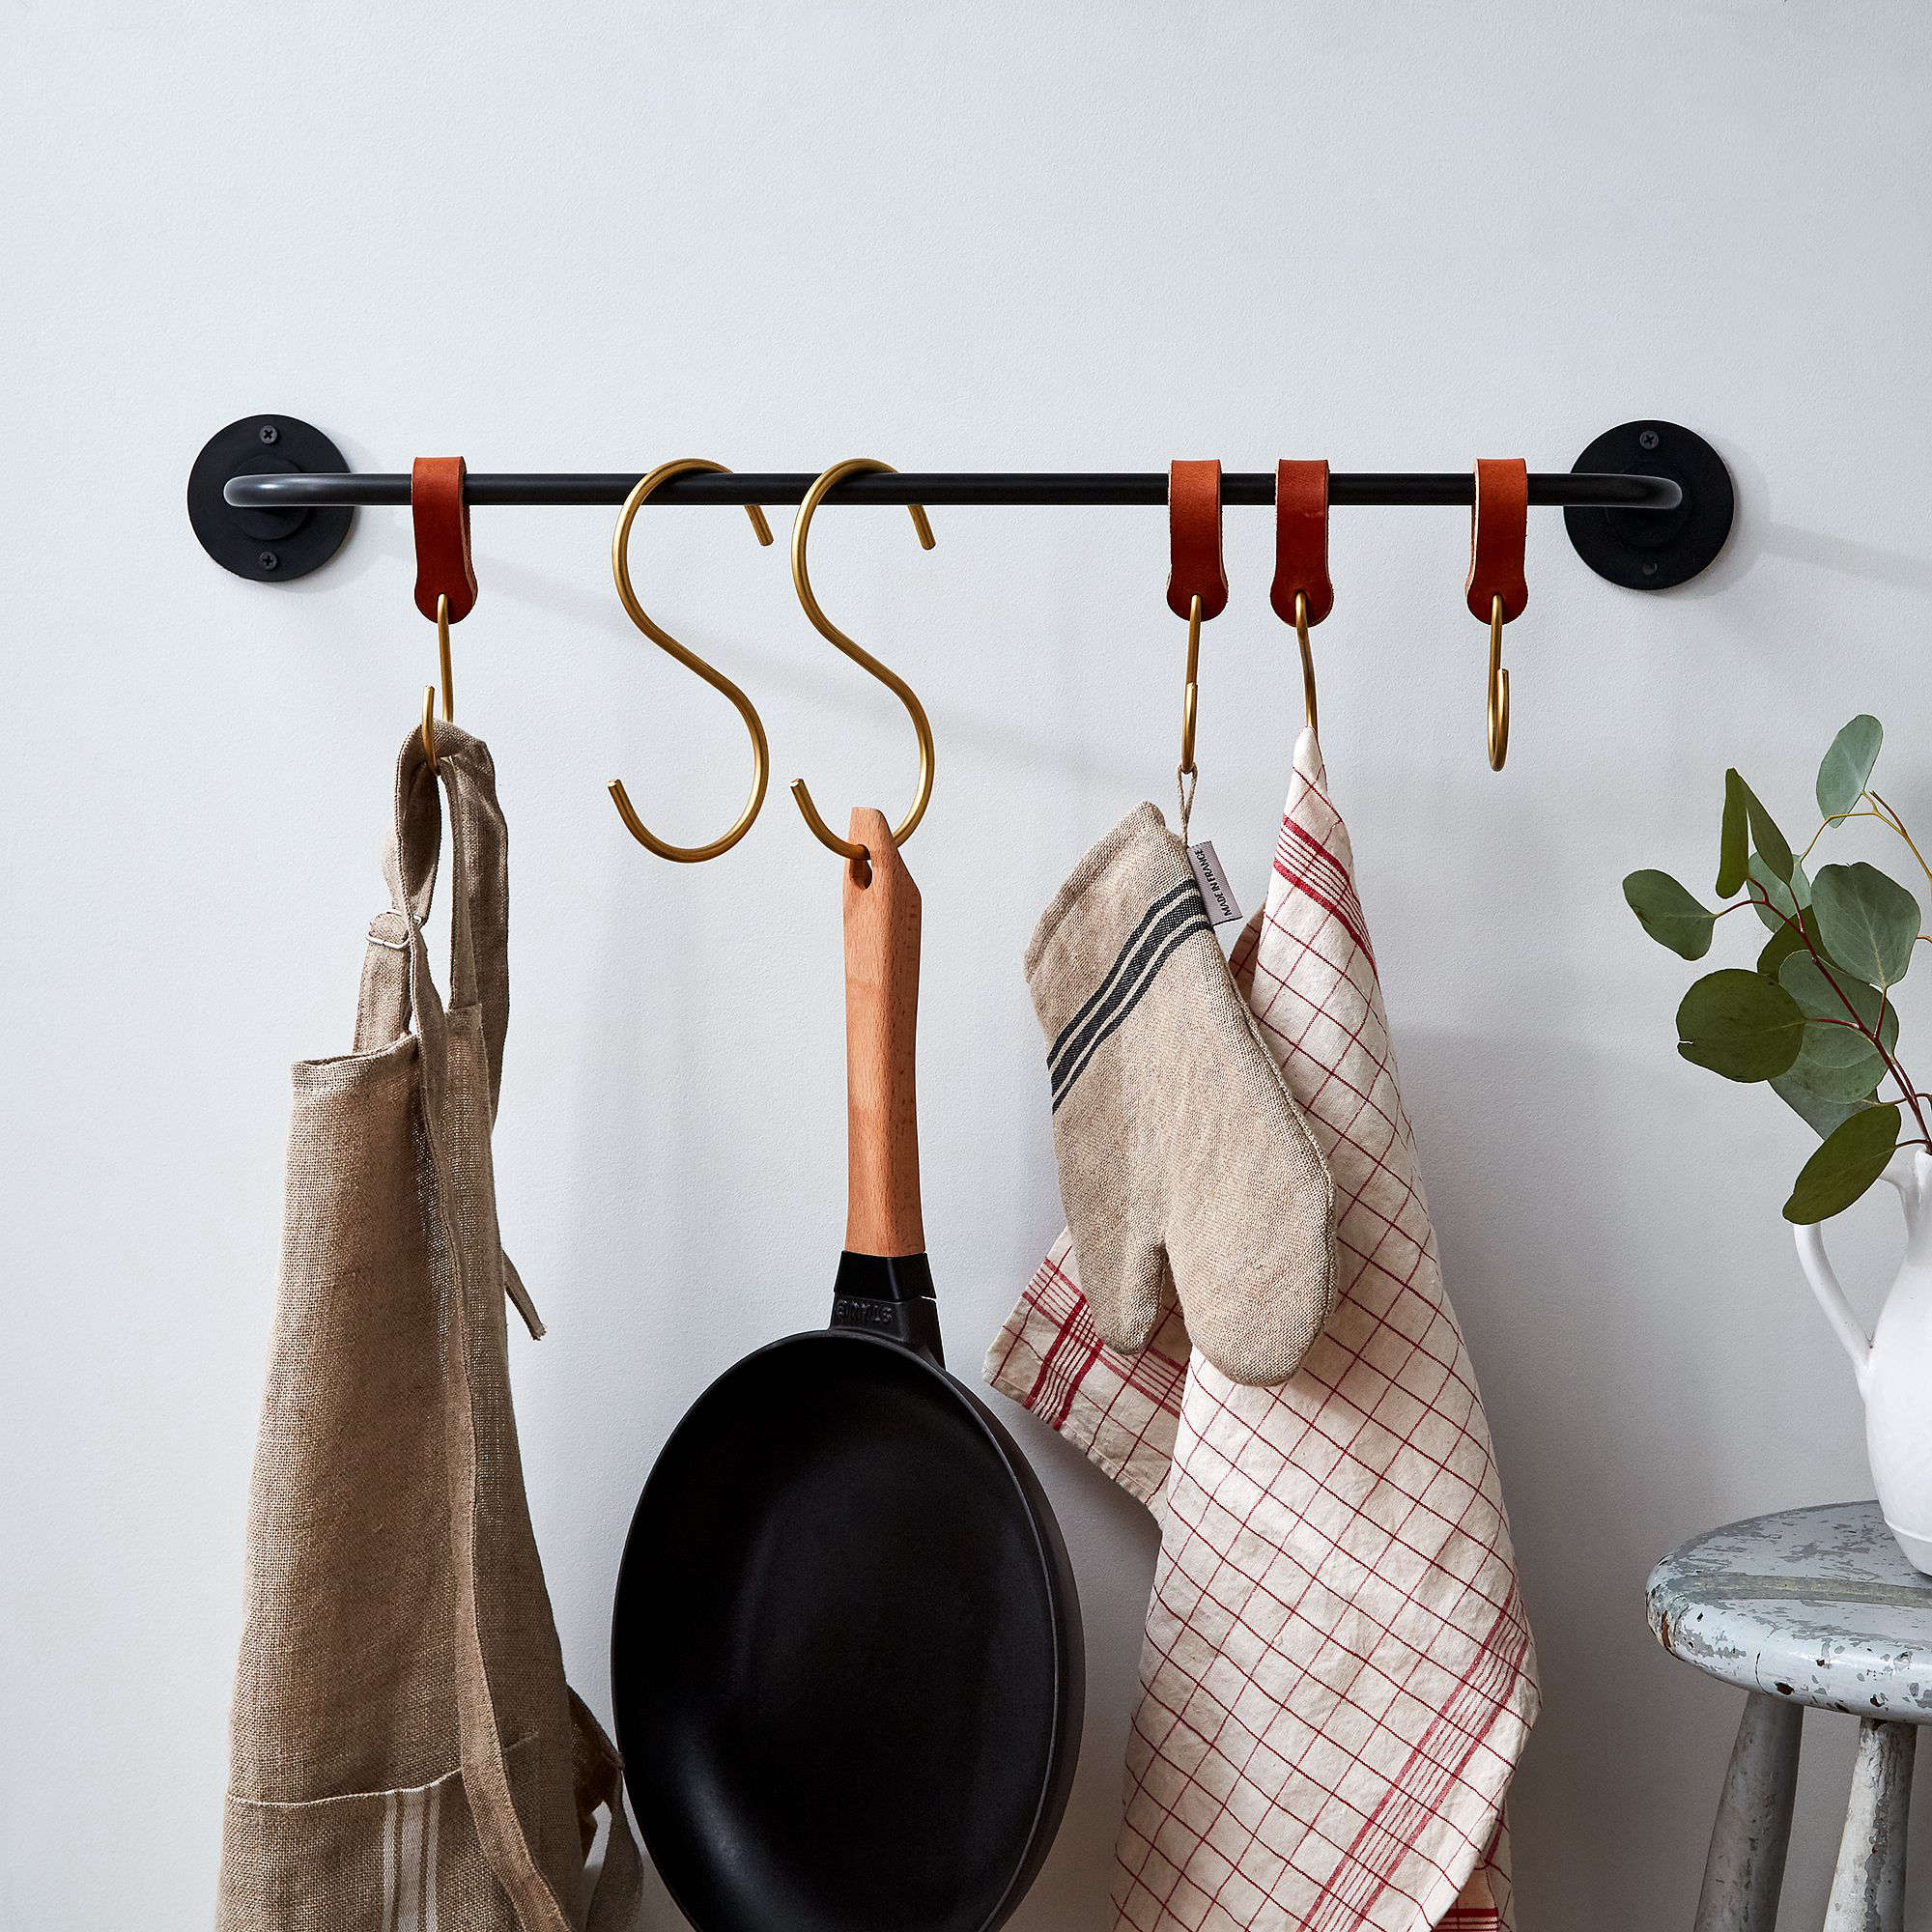 Lostine American Made Iron Pot Rack at Food52